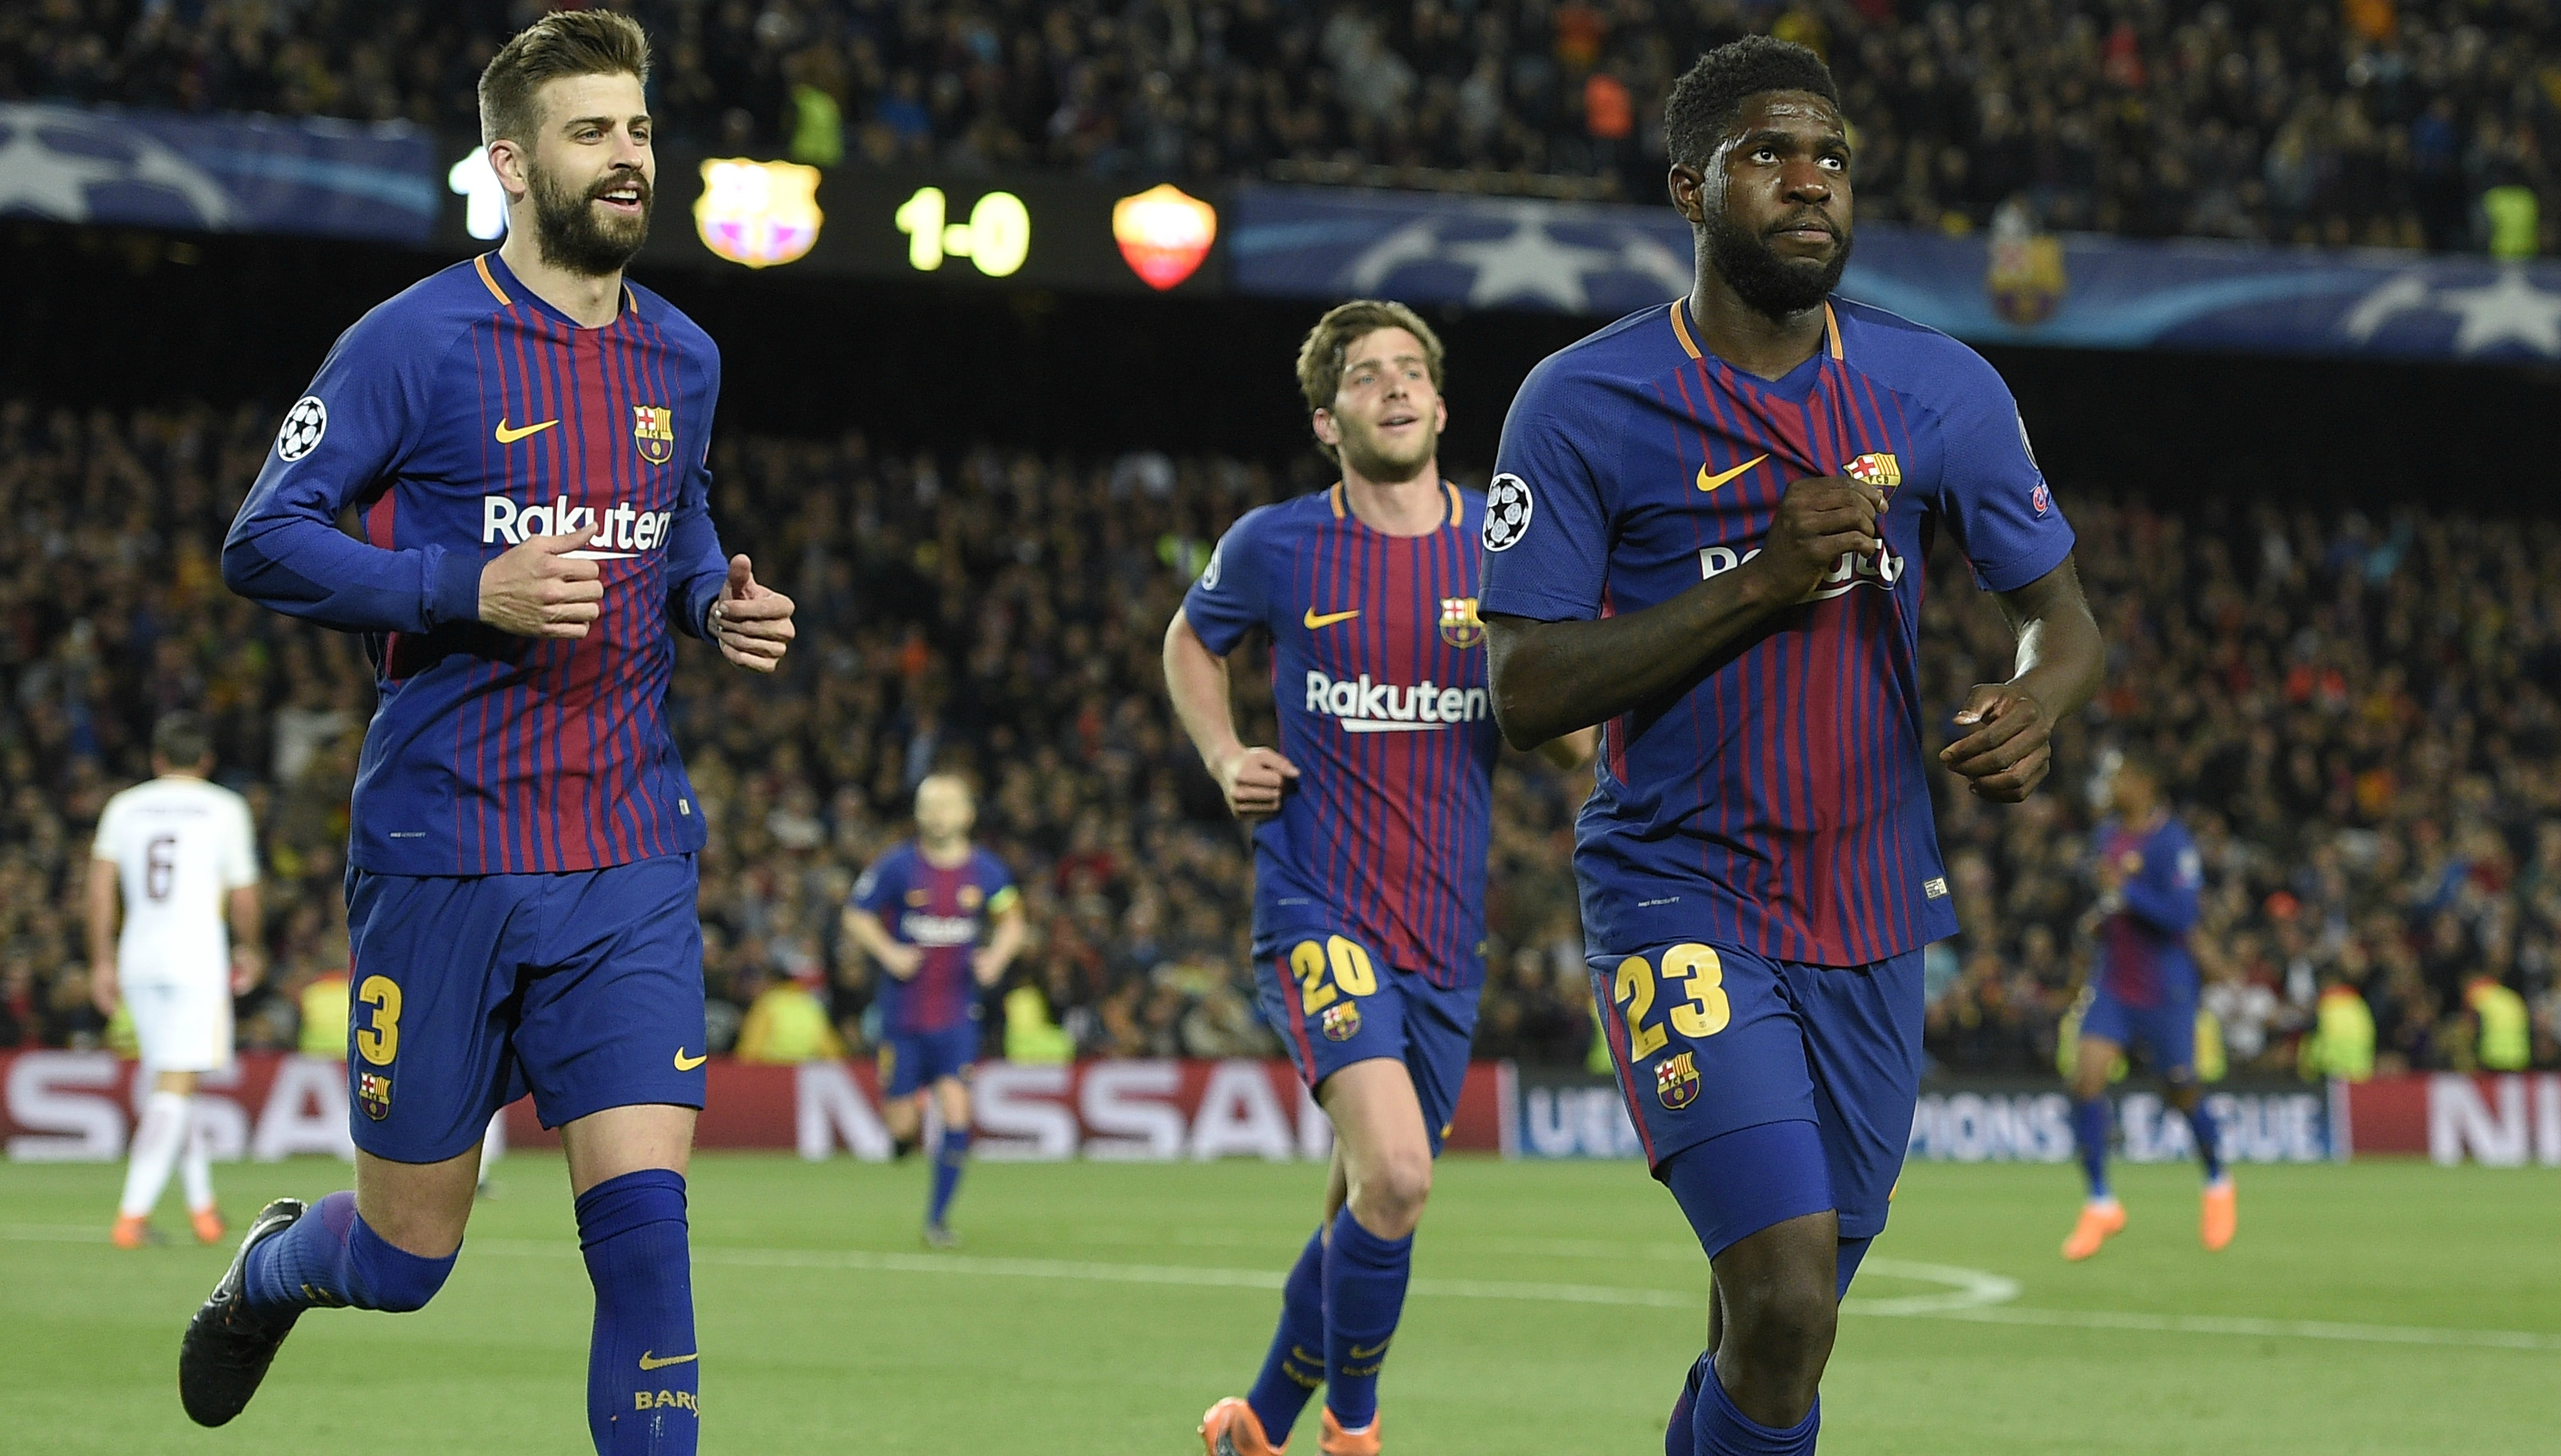 new product 461c0 6b5b7 Barcelona news: Umtiti declares love for Barcelona putting ...